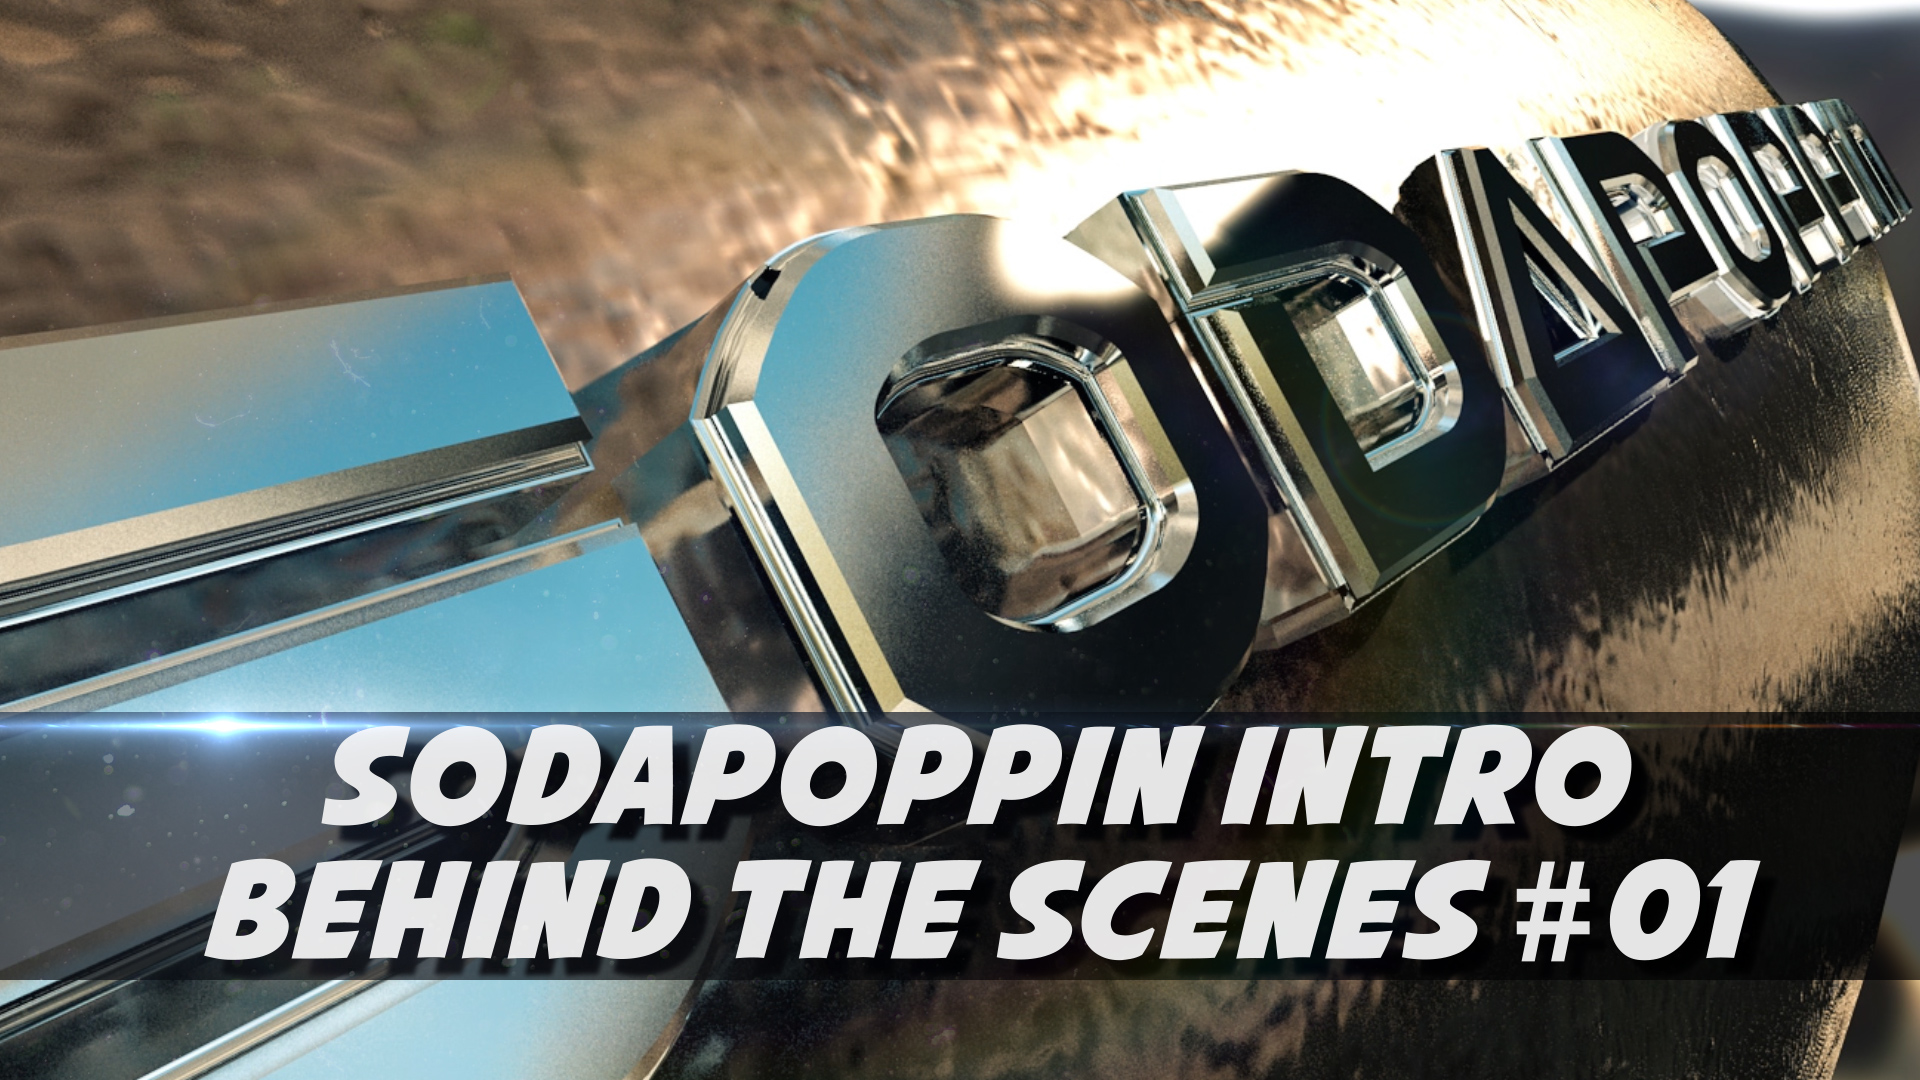 Sodapoppin Intro: Tank Scene – Behind The Scenes C4D & AE with Psynaps